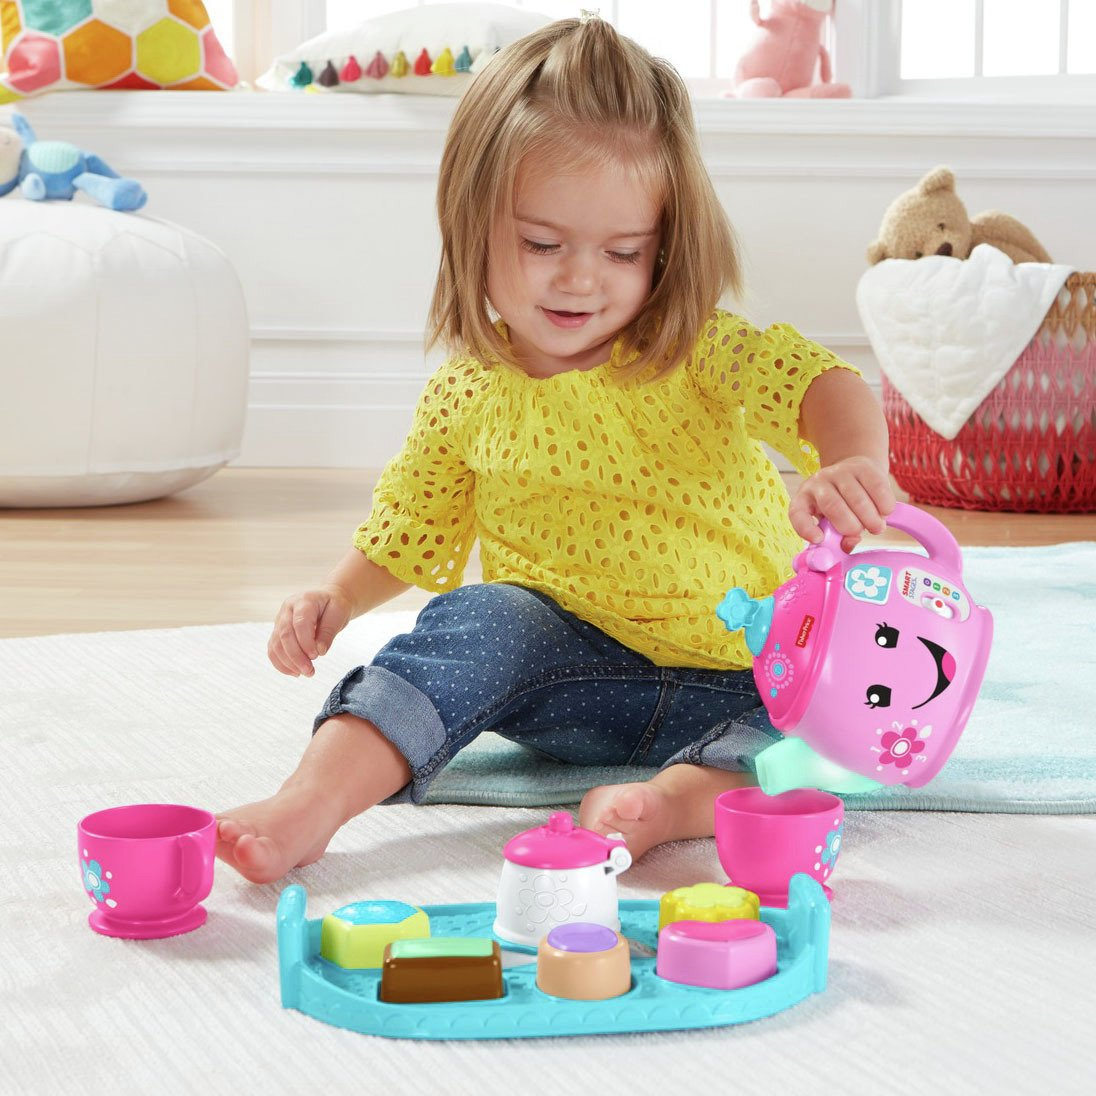 Fisher-Price Laugh & Learn Sweet Manners Tea Set from Fisher-Price